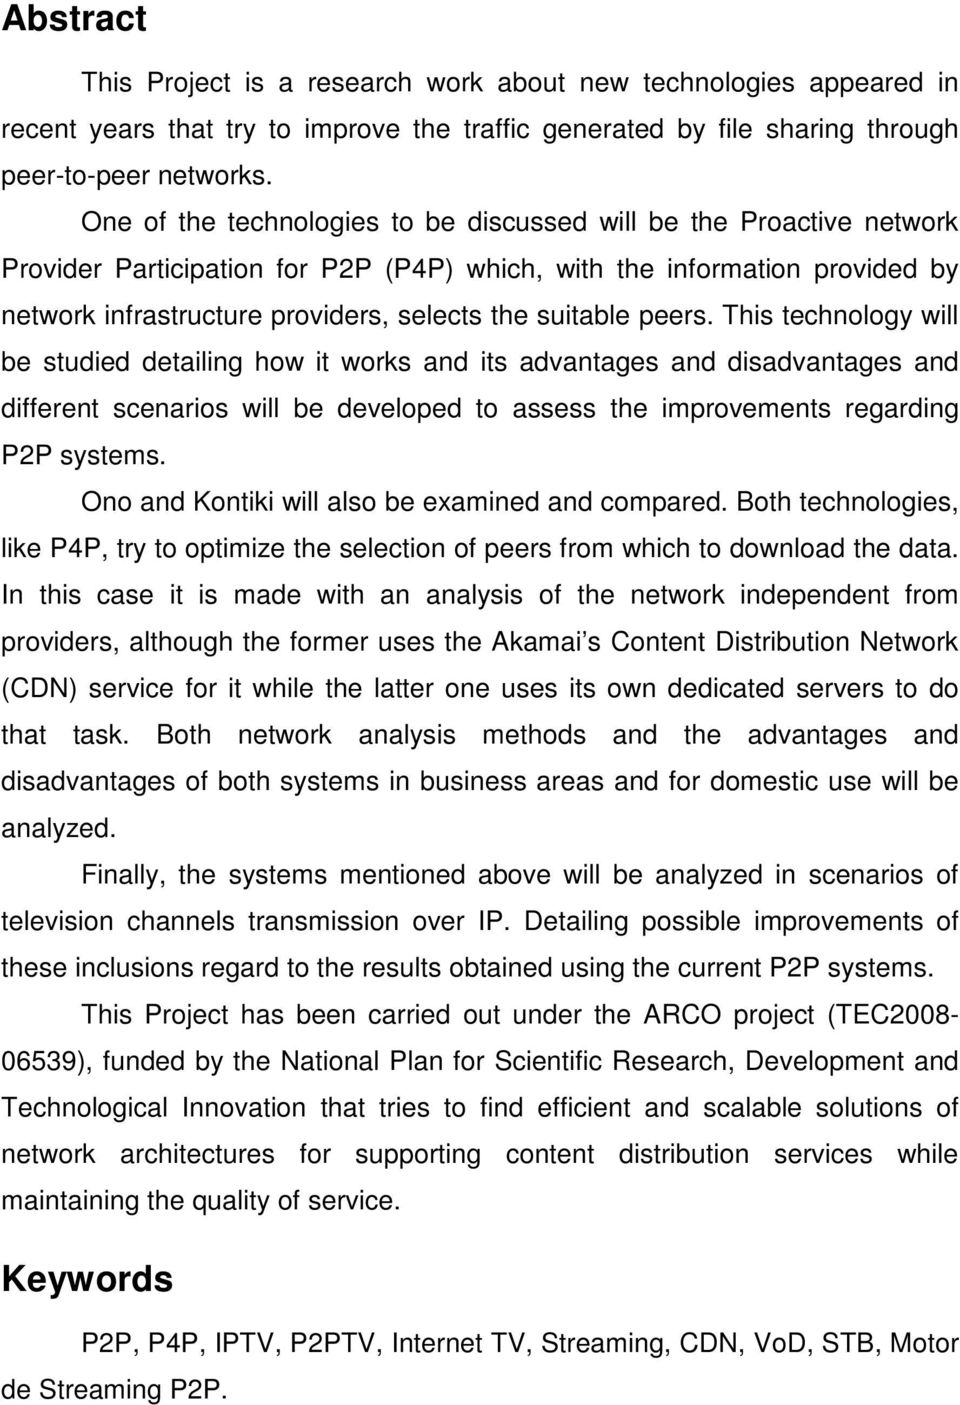 suitable peers. This technology will be studied detailing how it works and its advantages and disadvantages and different scenarios will be developed to assess the improvements regarding P2P systems.